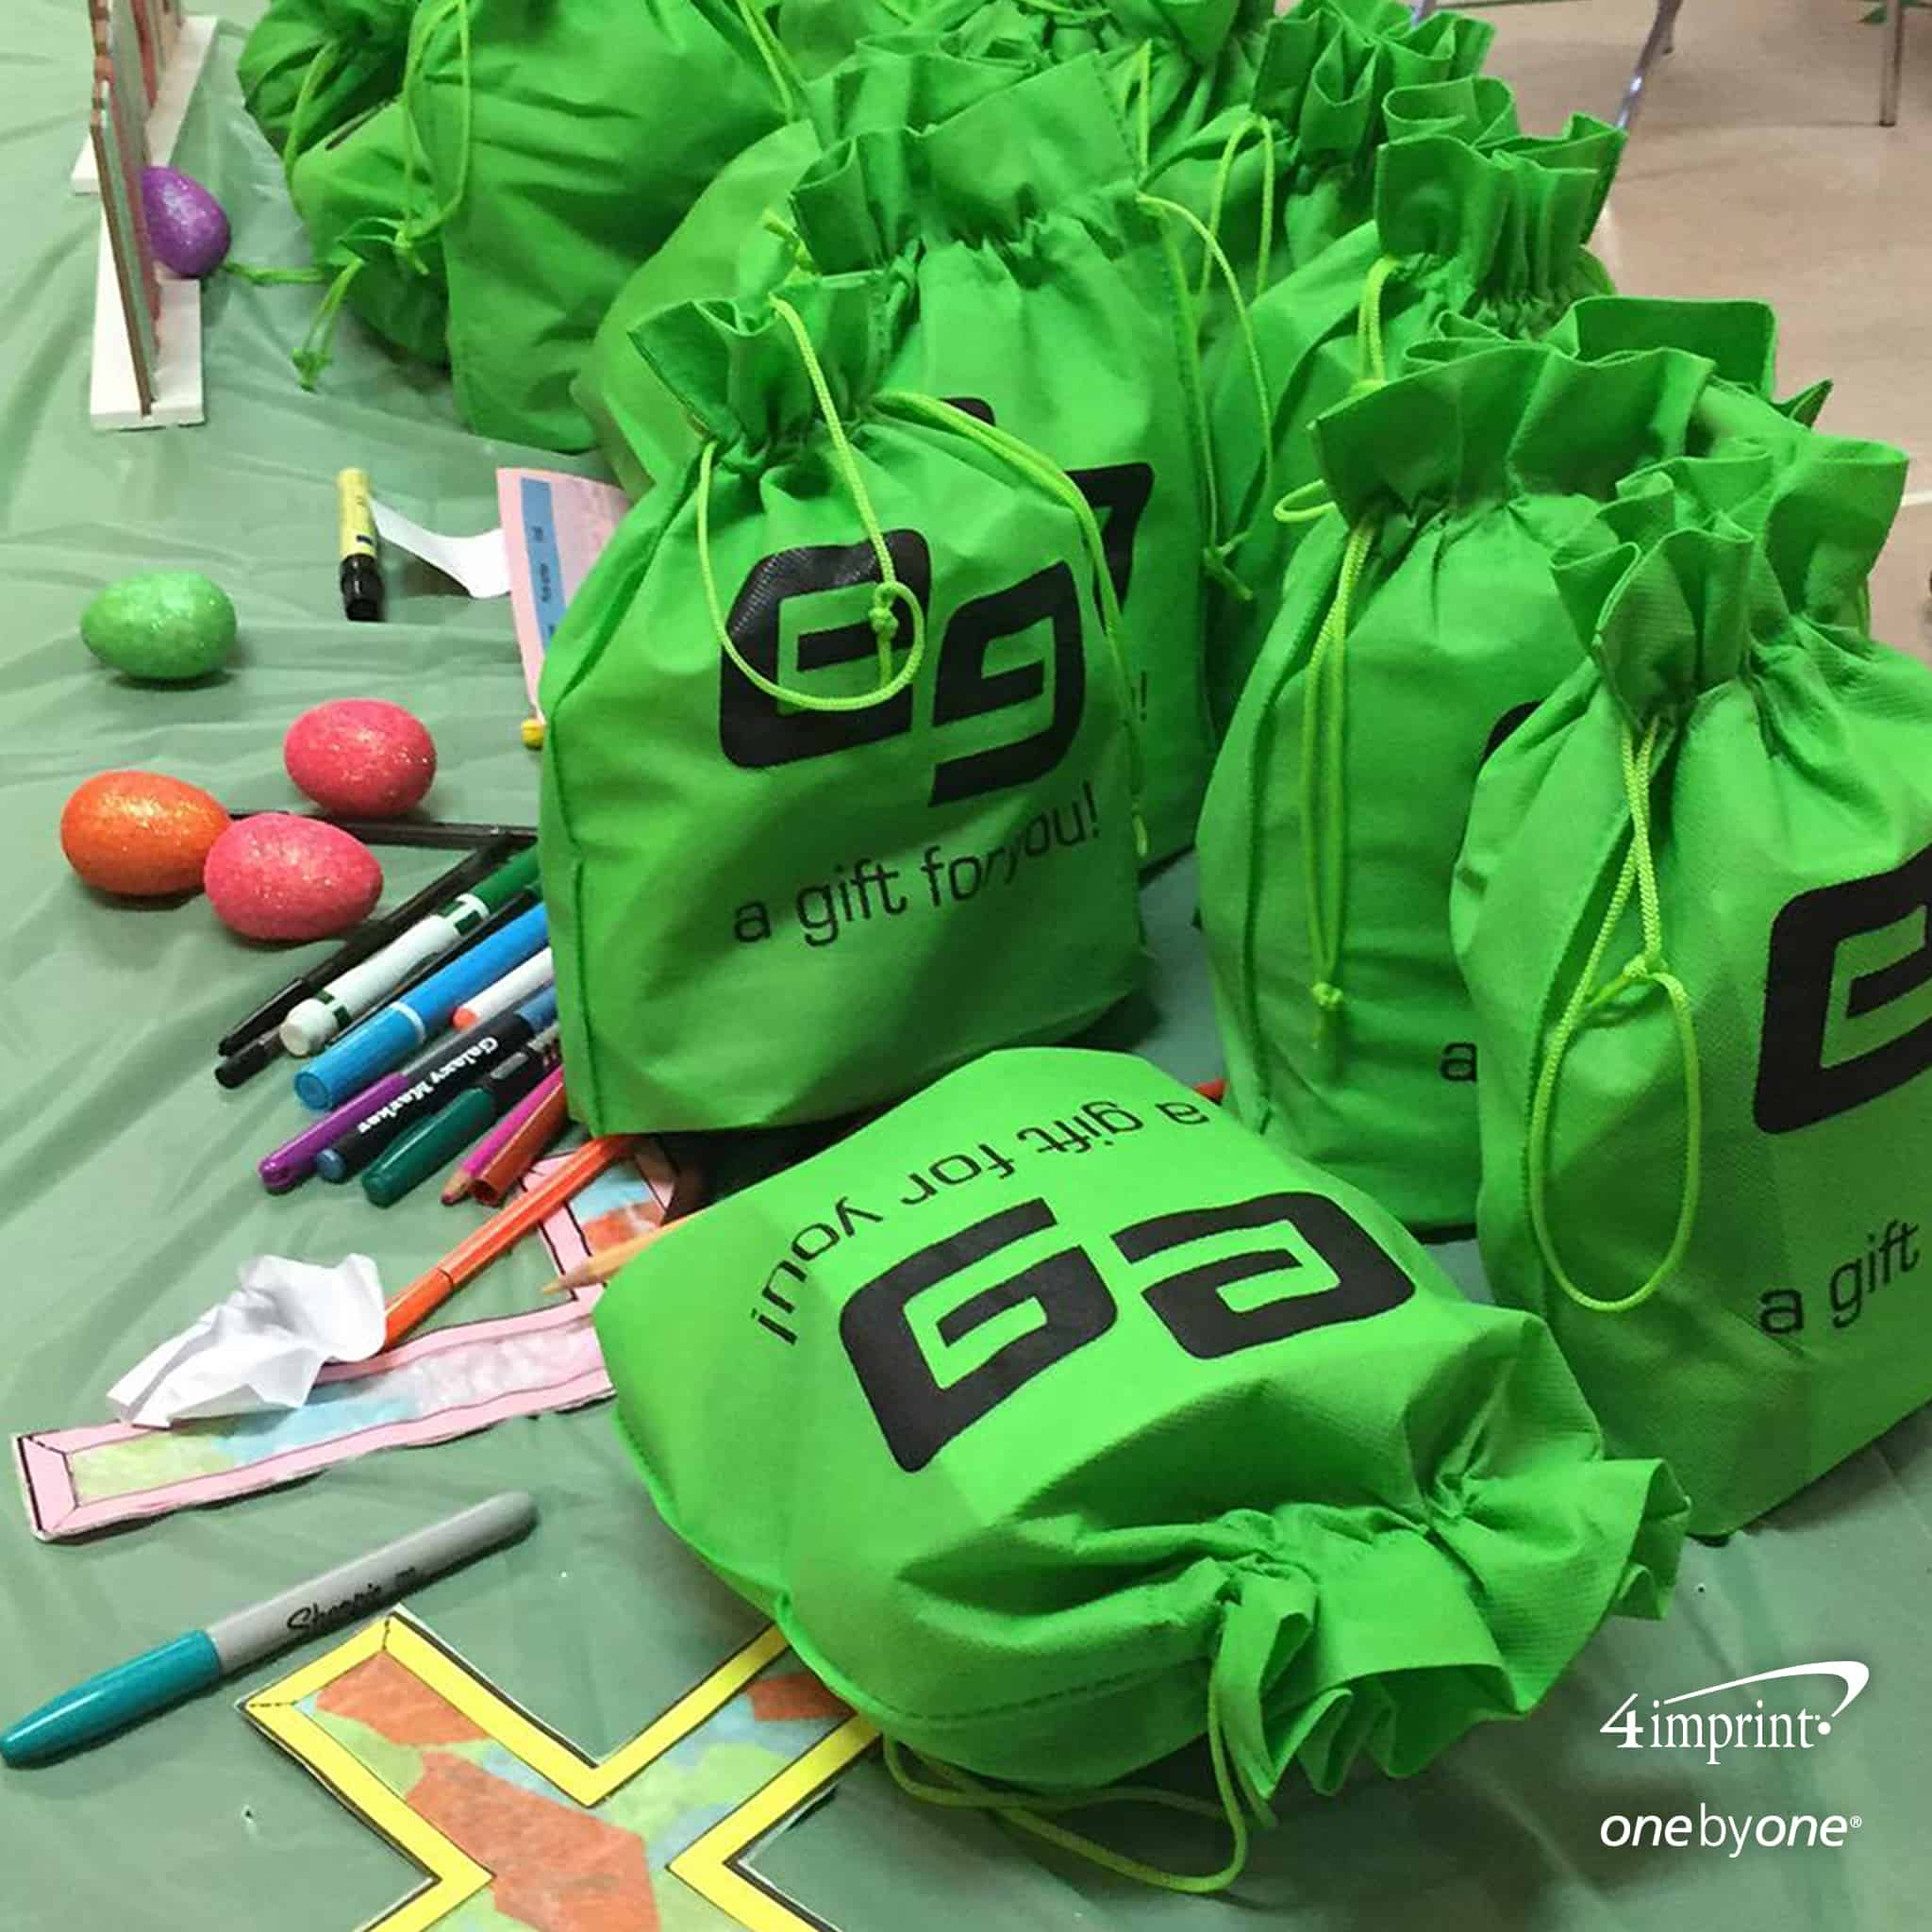 Vancouver Chinese Pentecostal Church received a one by one promotional products grant from 4imprint